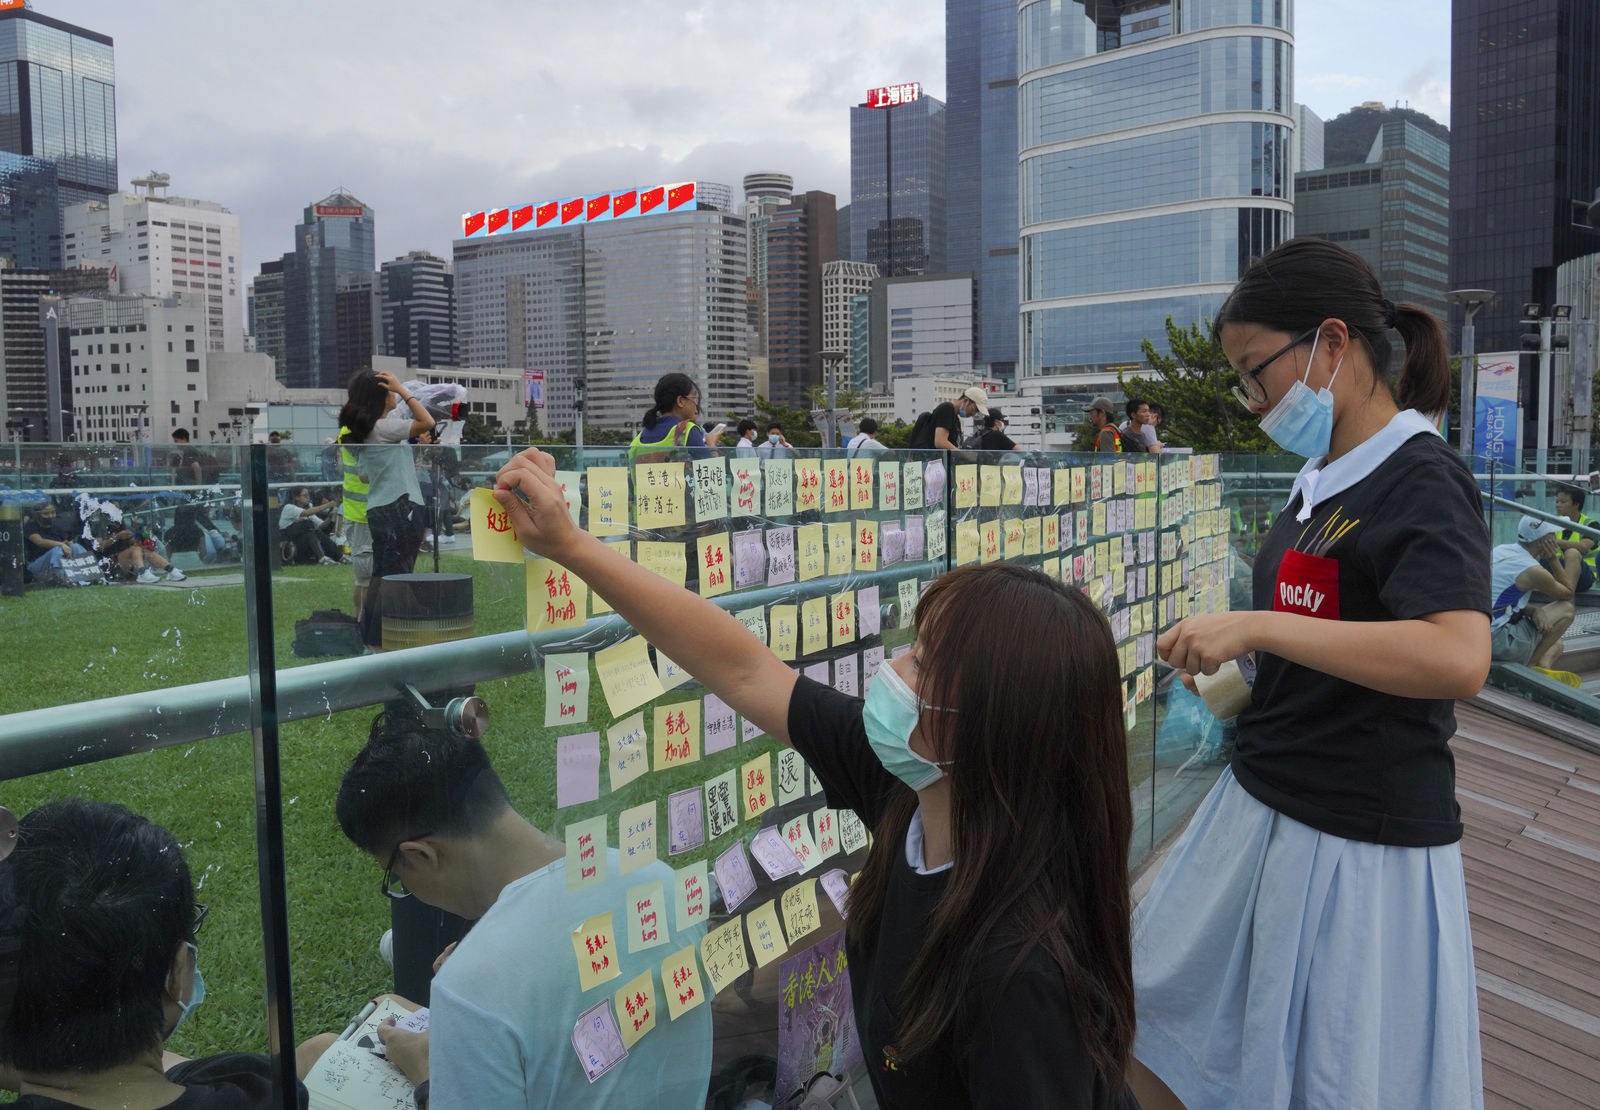 FILE- Protesters put their massage on Sticky Note Lennon Walls during continuing pro-democracy rallies in Tamar Park, Hong Kong, on Tuesday, Sept. 3, 2019. Hong Kong leader Carrie Lam said Tuesday she has never tendered her resignation to China over the anti-government protests that have roiled the city for three months. (AP Photo/Vincent Yu)